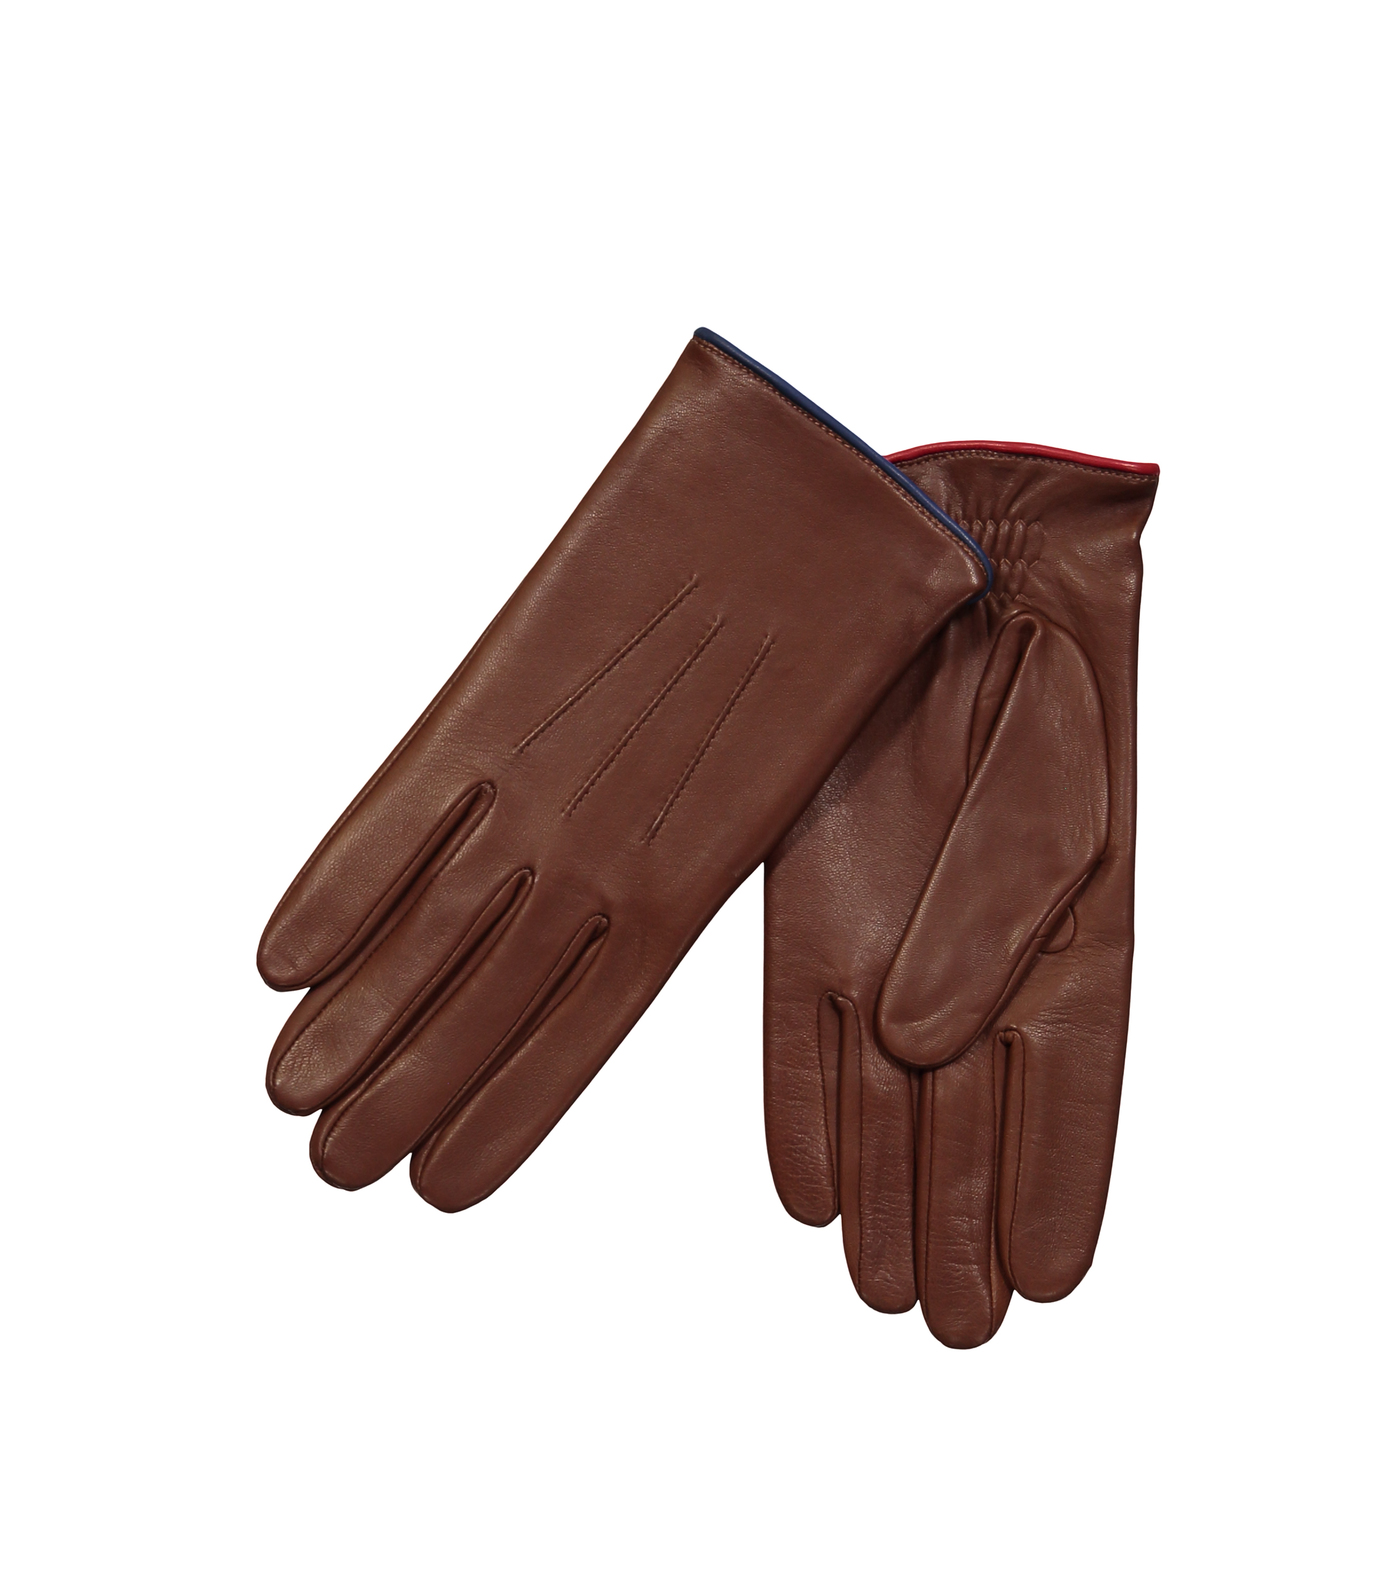 GLOVES COMMUNE - Camel